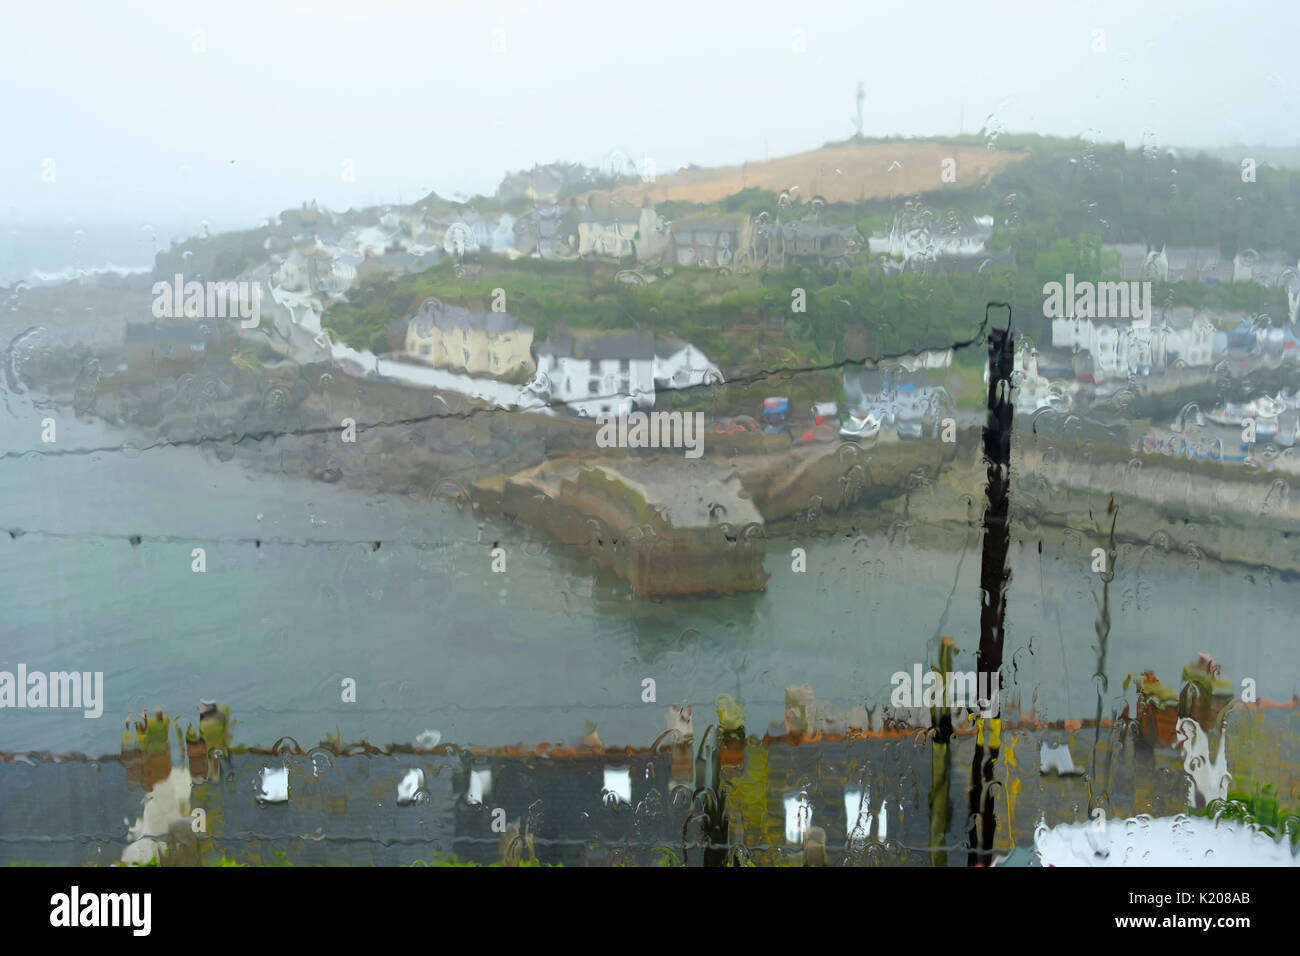 Rainy day in vacations, view from window, Porthleven, Cornwall, England, United Kingdom - Stock Image